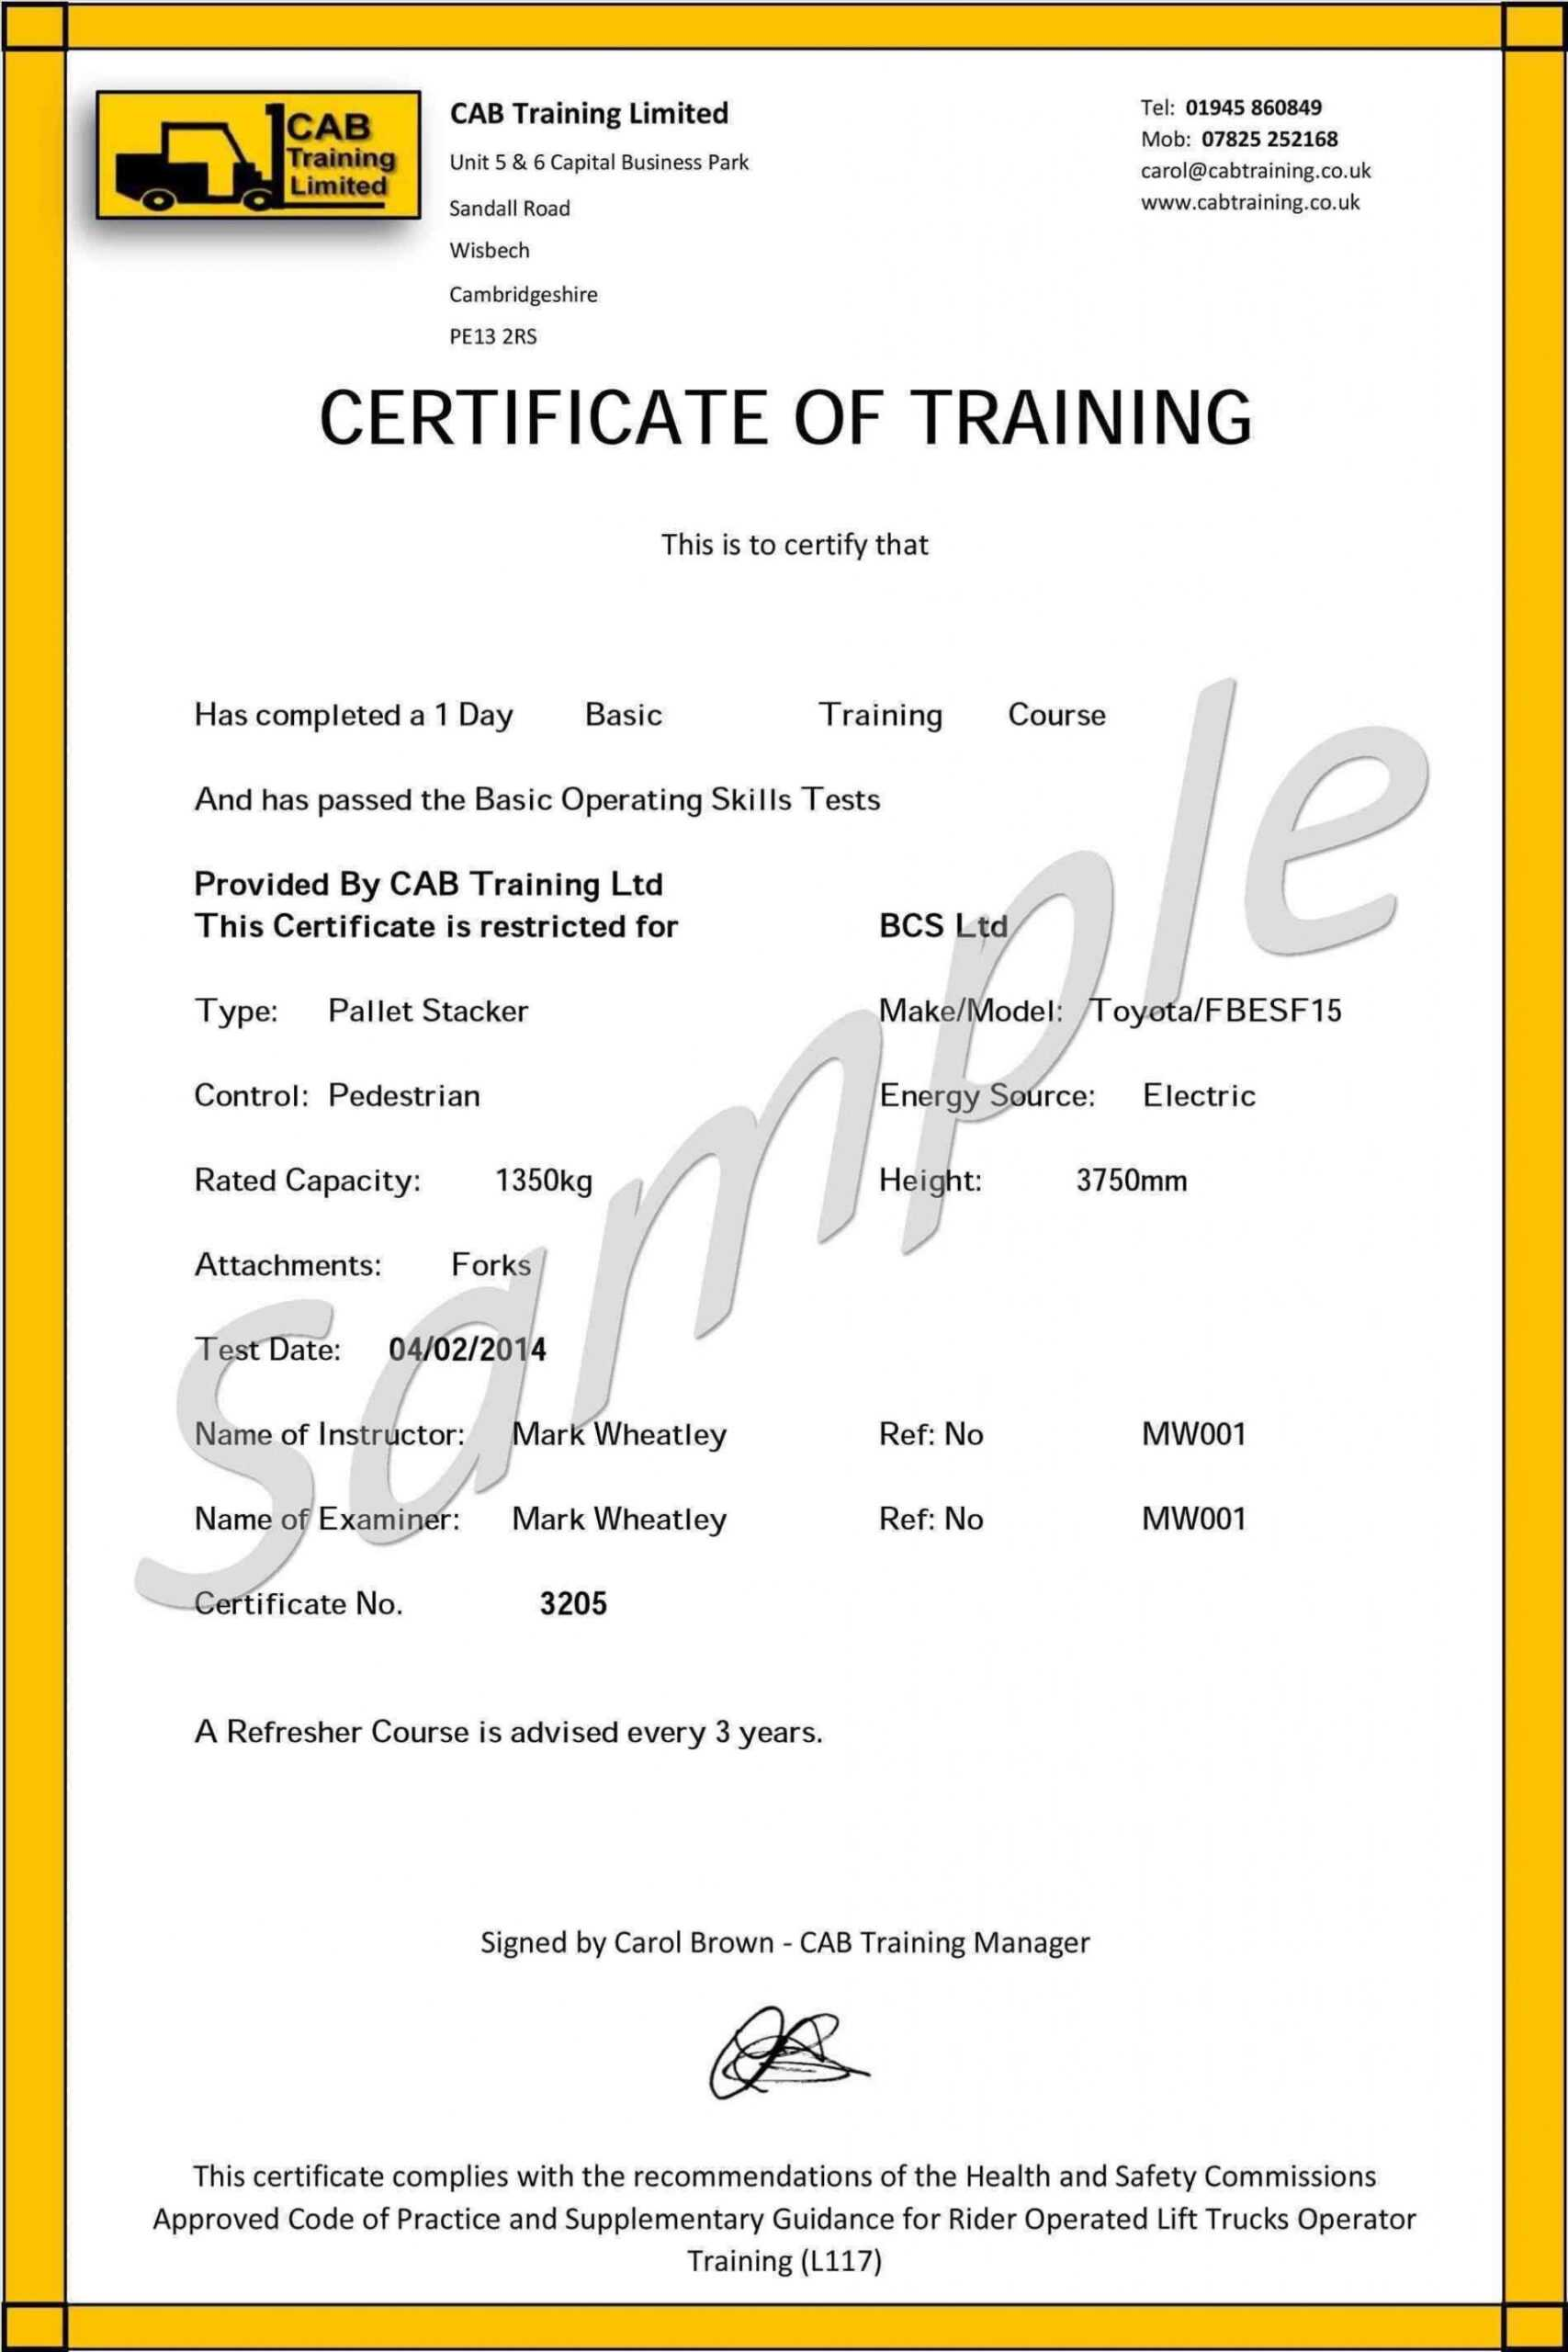 009 Forklift Certification Card Template Free Original Throughout Forklift Certification Card Template